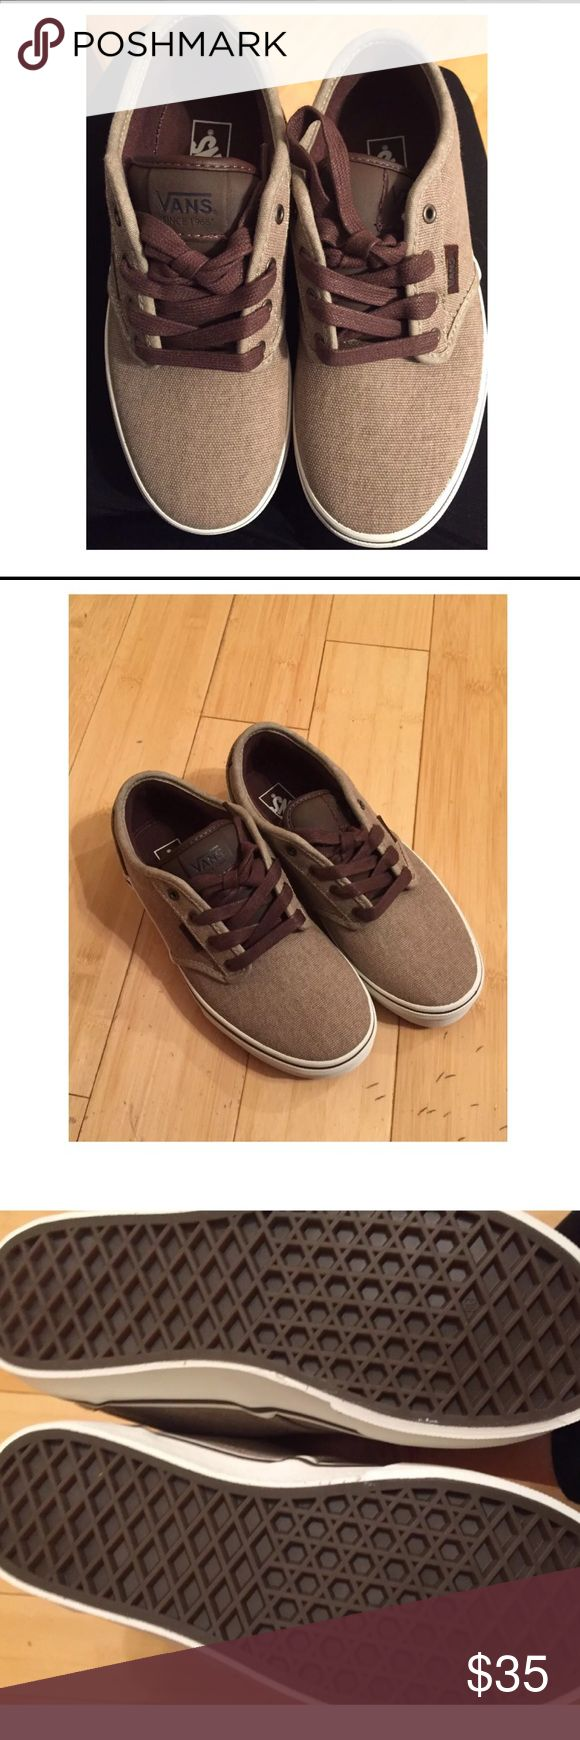 Brand new brown canvas Boys Vans size 3 Bought these at beginning of summer for an event in August and my son had a growth spurt. Threw out box to avoid clutter. Never worn. Brand new. They are brown tweed/canvas with brown leather looking tongue and brown laces. Vans Shoes Sneakers